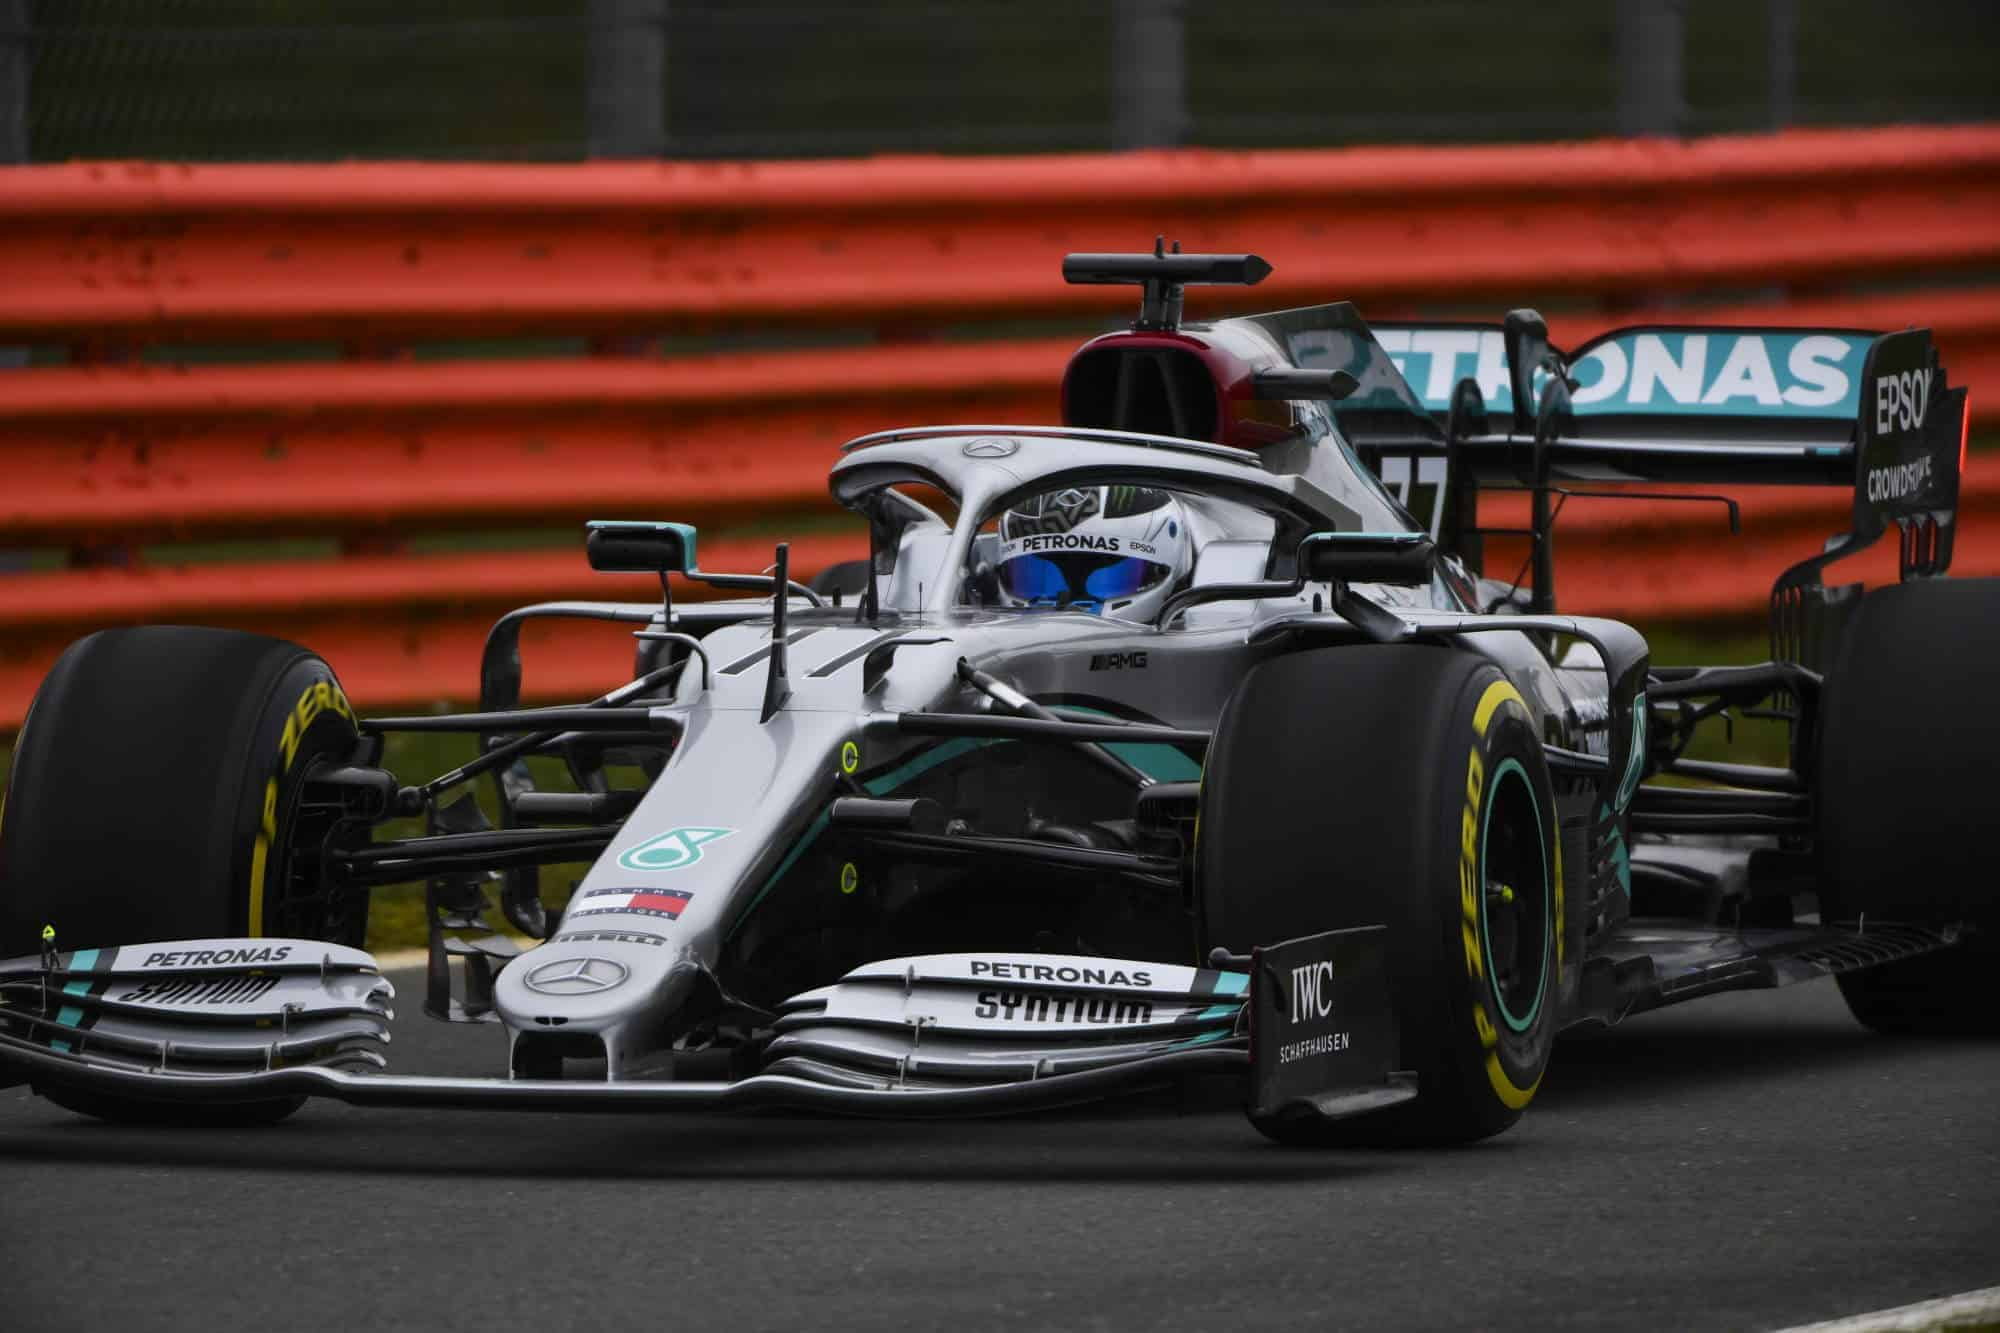 2020 F1 Mercedes F1 W11 first shakedown Bottas zoom front 2000px Silverstone Photo Daimler